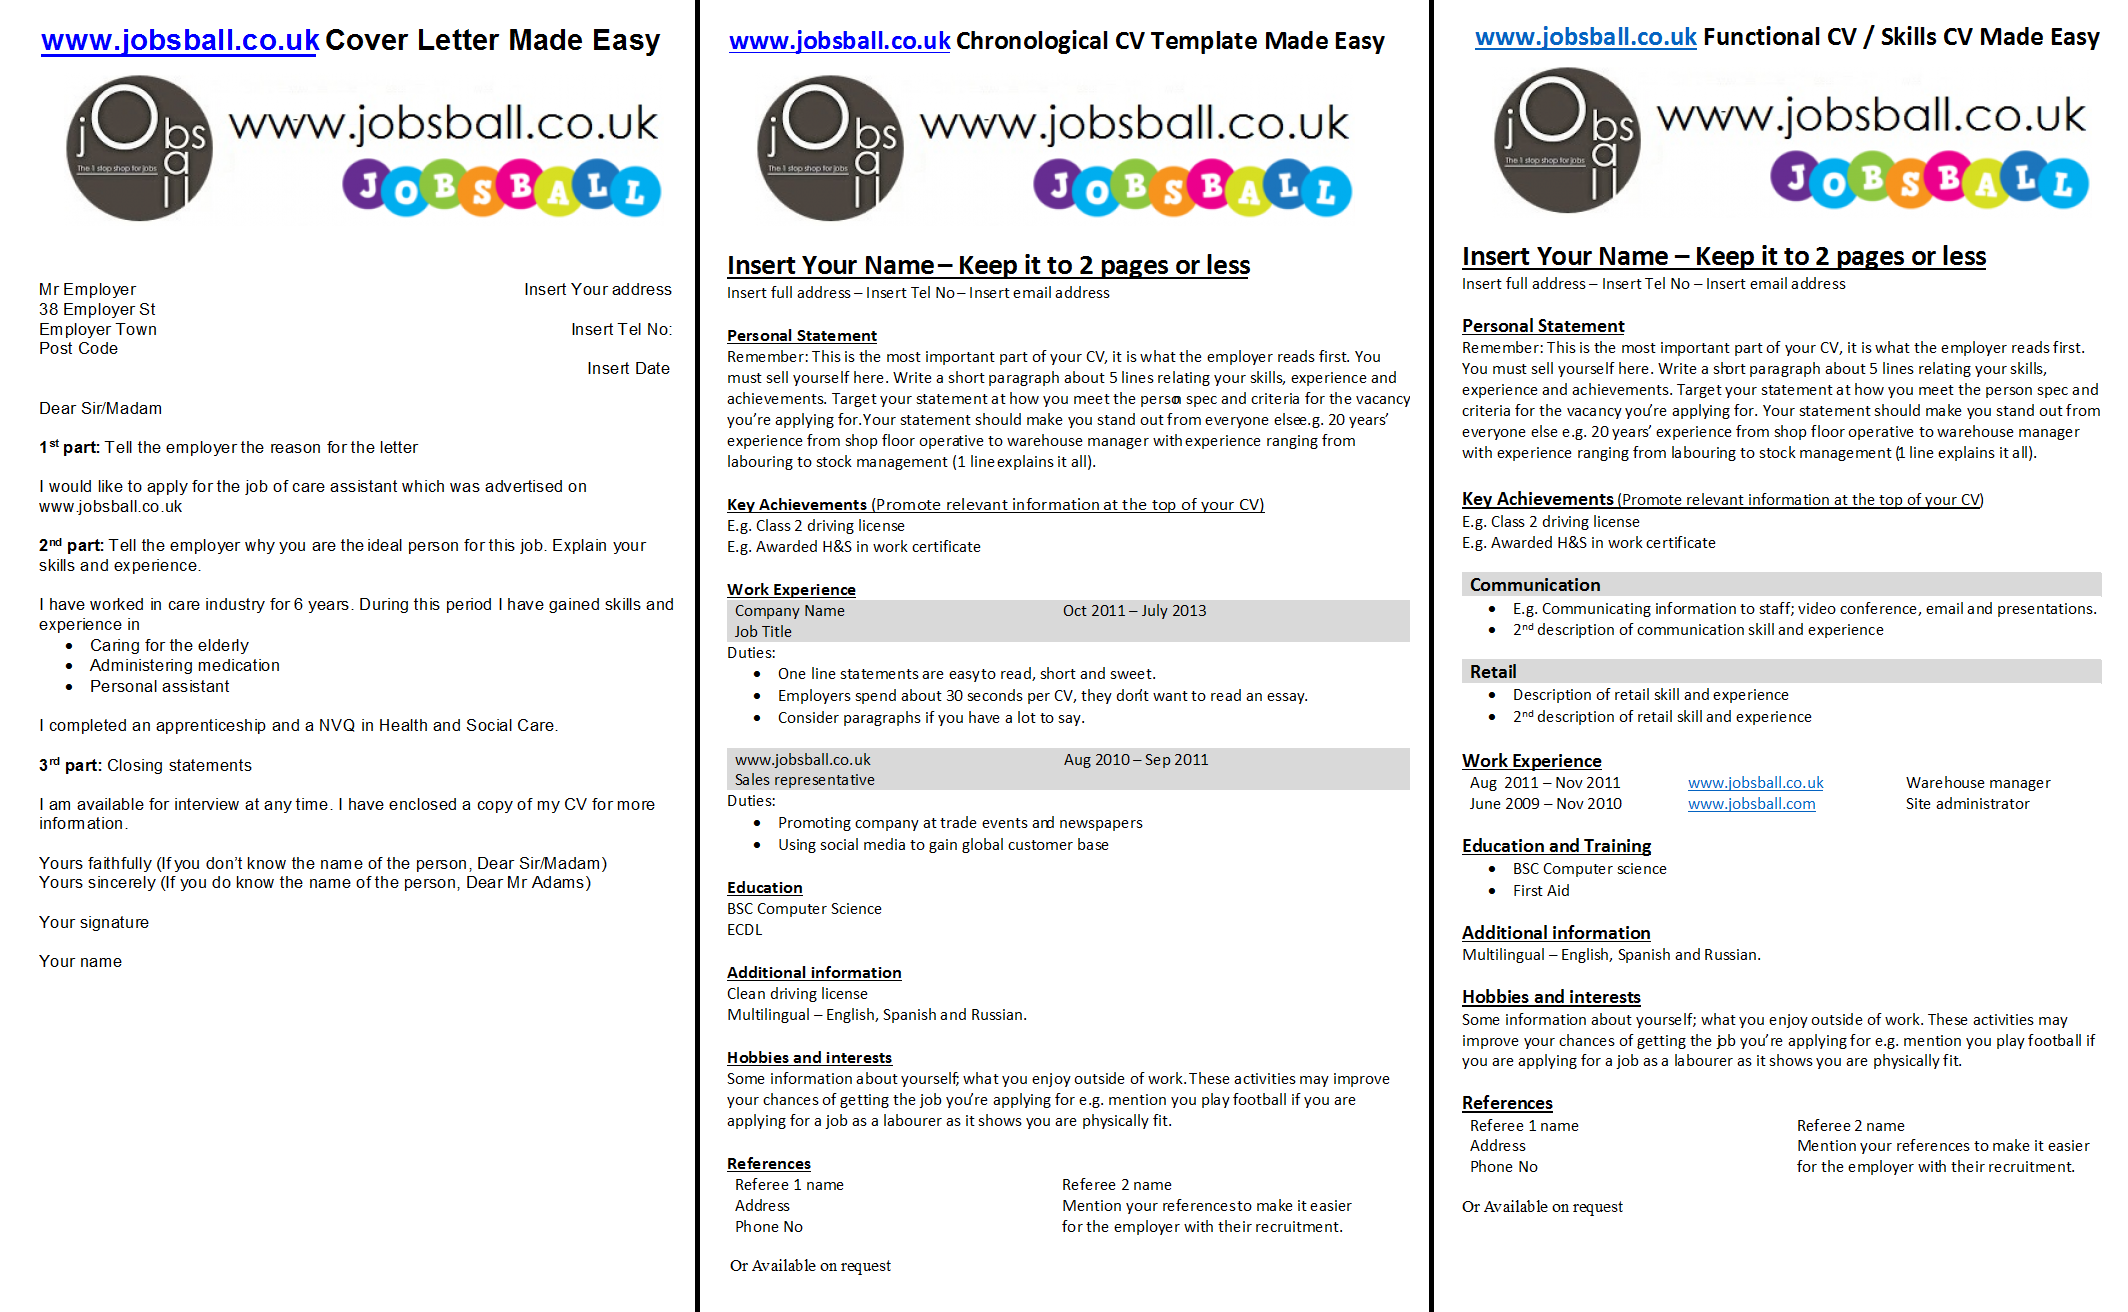 Cv And Cover Letter Made Easy With WwwJobsballCoUk Simple Cv